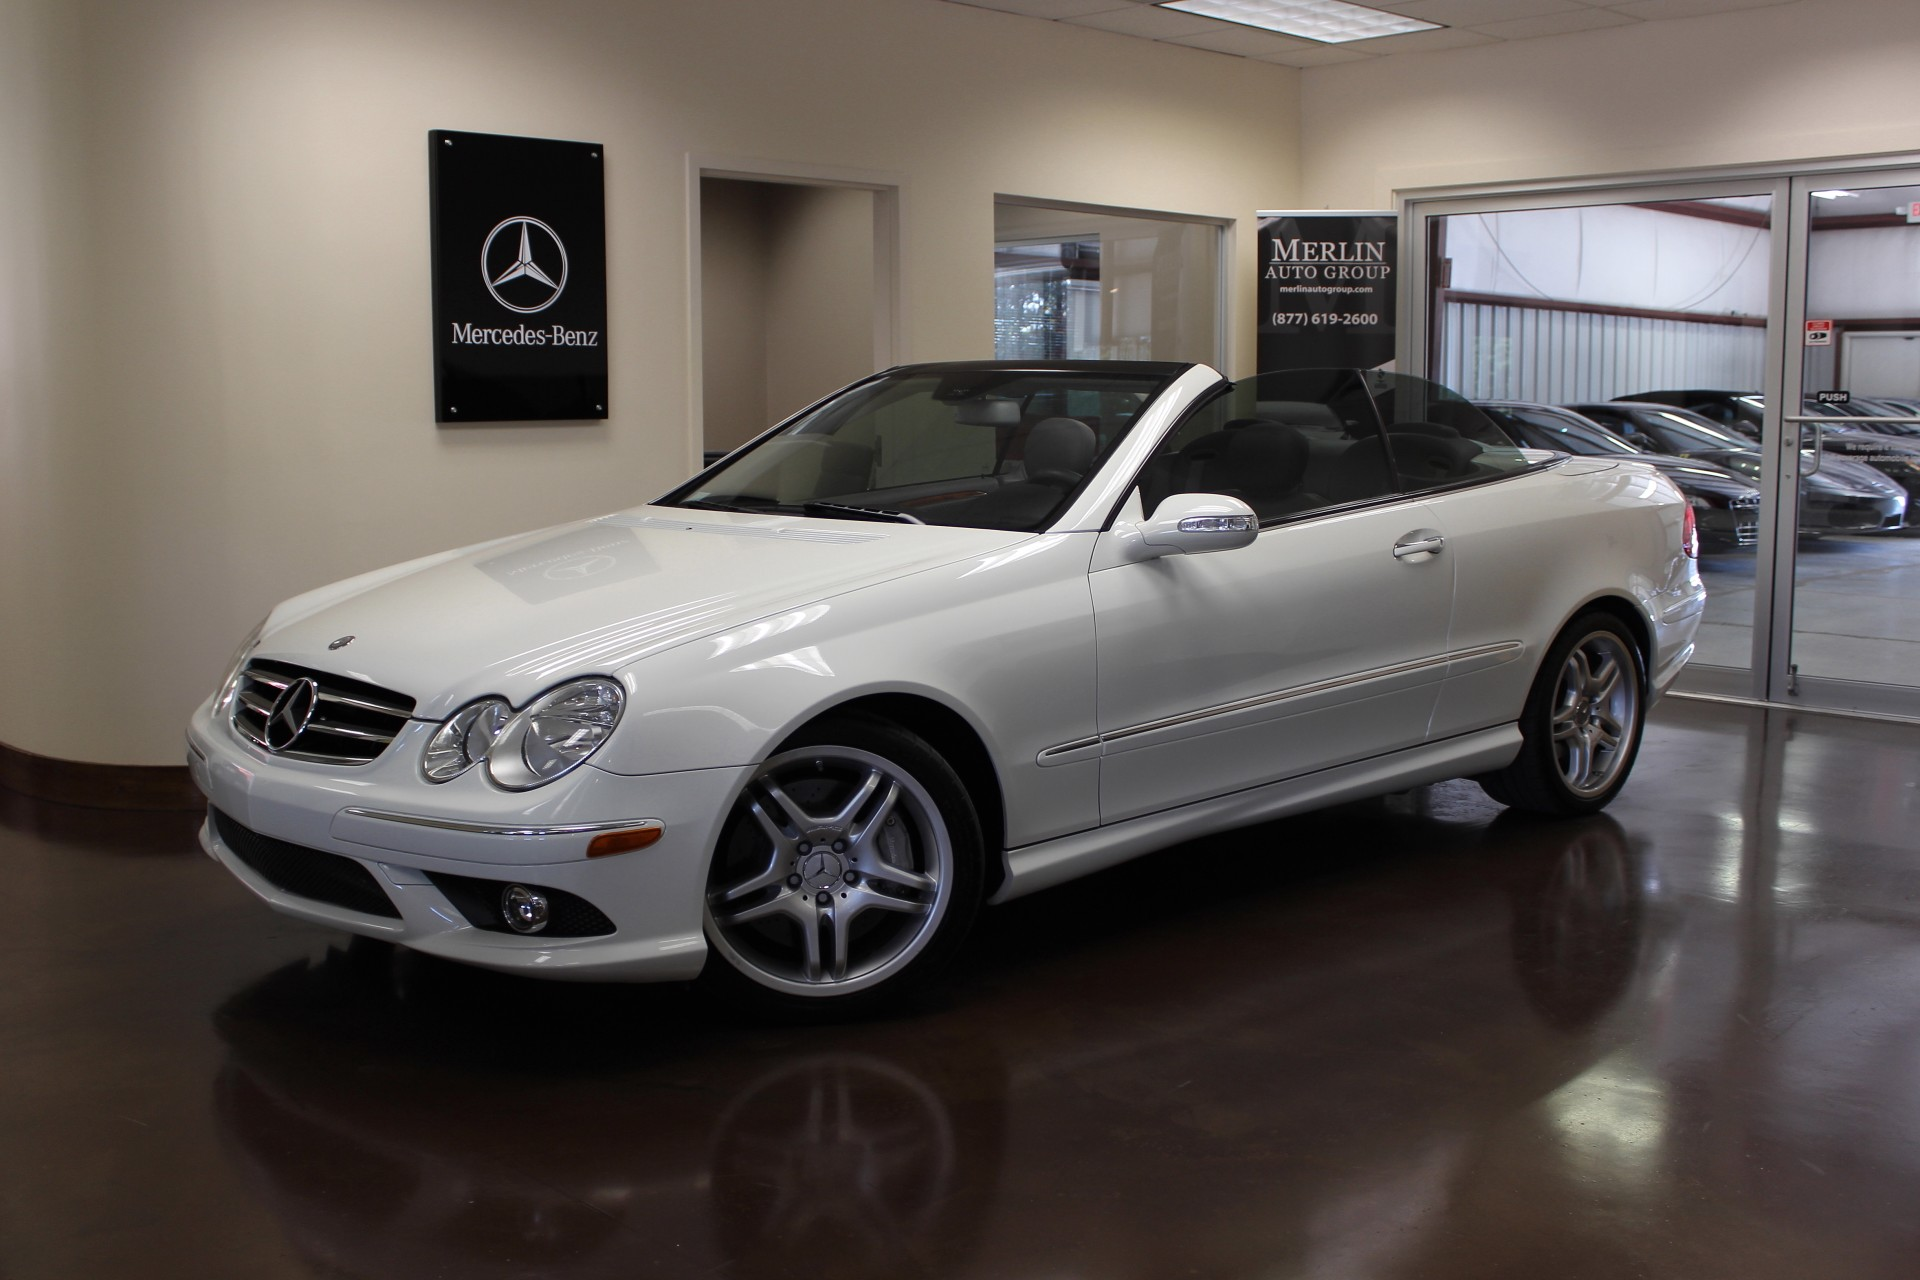 Used 2008 mercedes benz clk class stock p2933 ultra for 2008 mercedes benz clk class